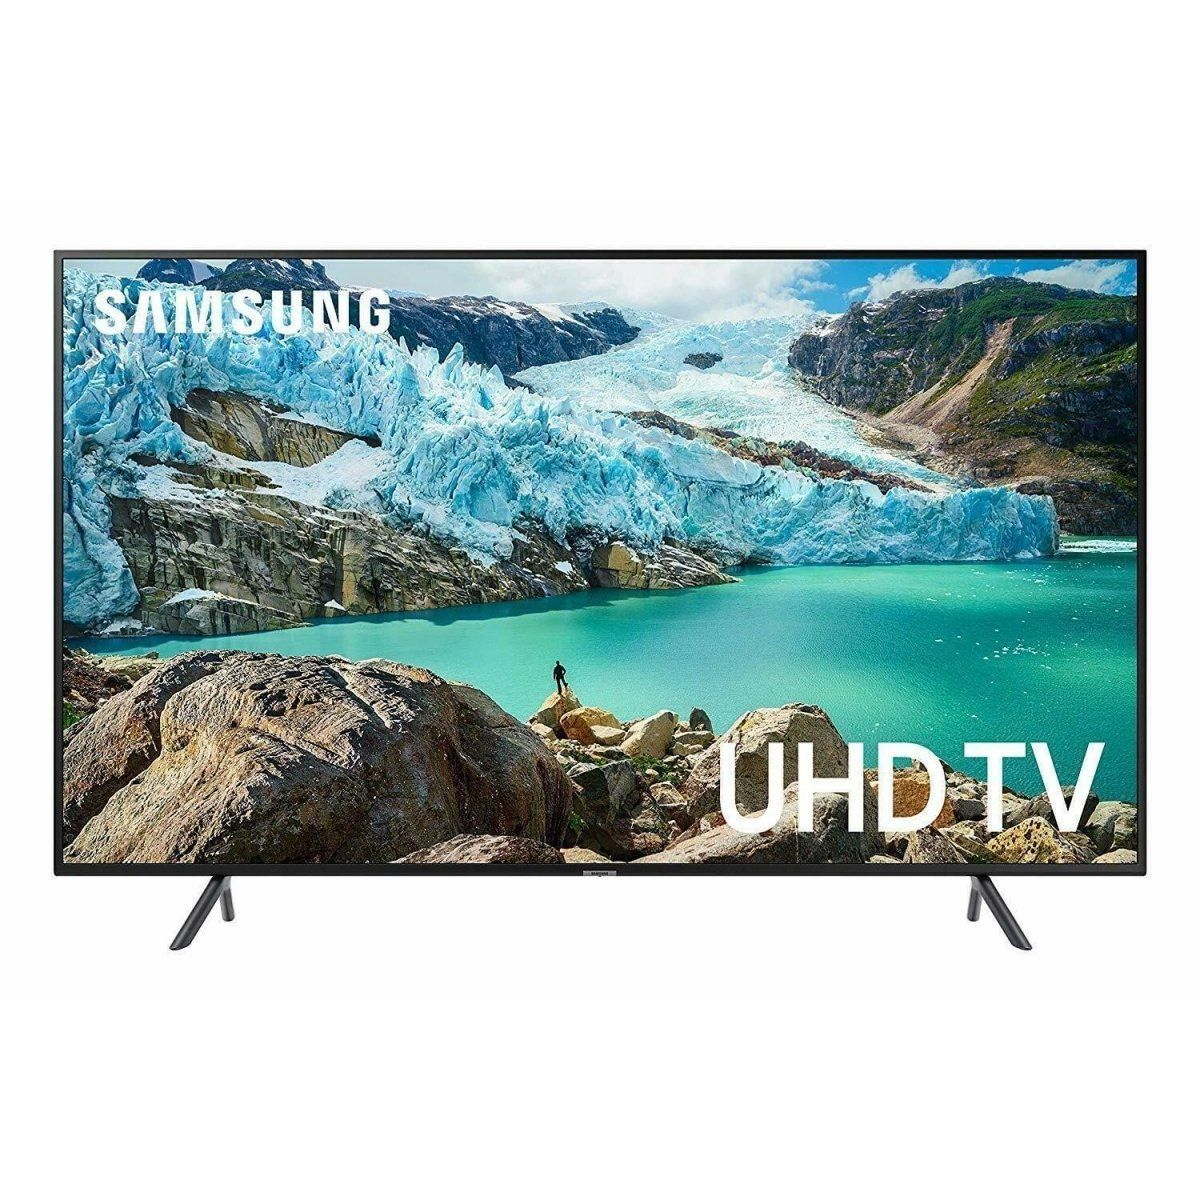 "Samsung UN43RU7100 43"" Smart 4K Ultra HD TV with Google Assistant & Alexa - Fix Or Cell Now Device Shop"